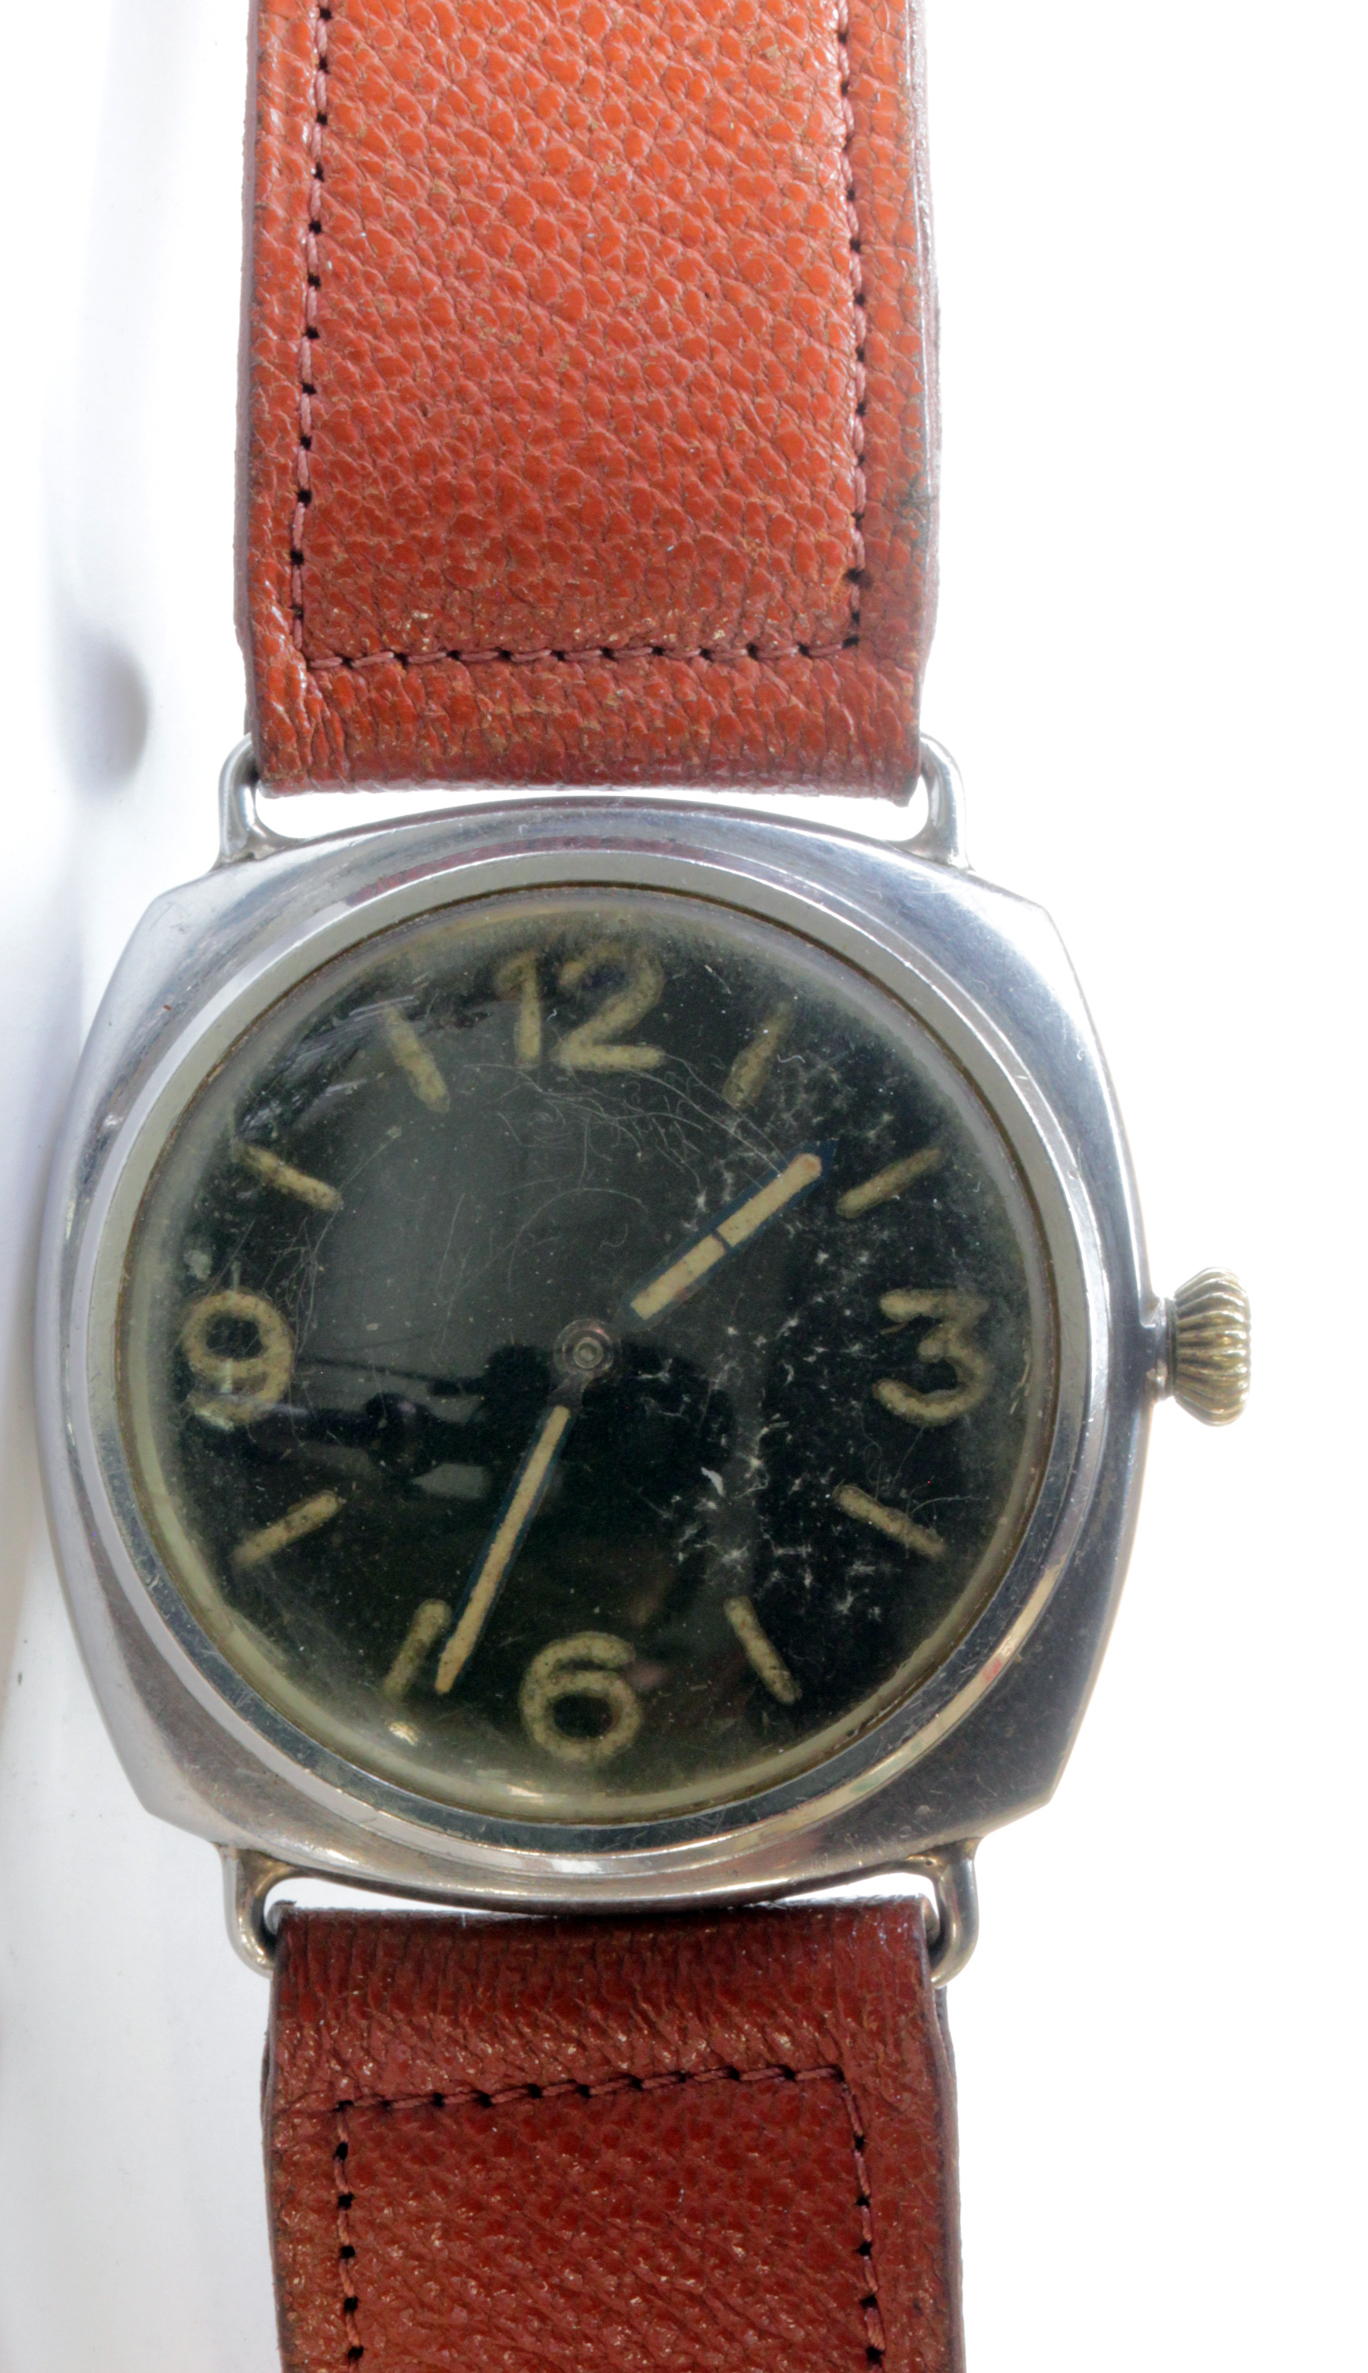 Lot 307 - WWII German Panerai Frogmens military wristwatch (Model 3646), with Rolex 17 Rubis movement, black